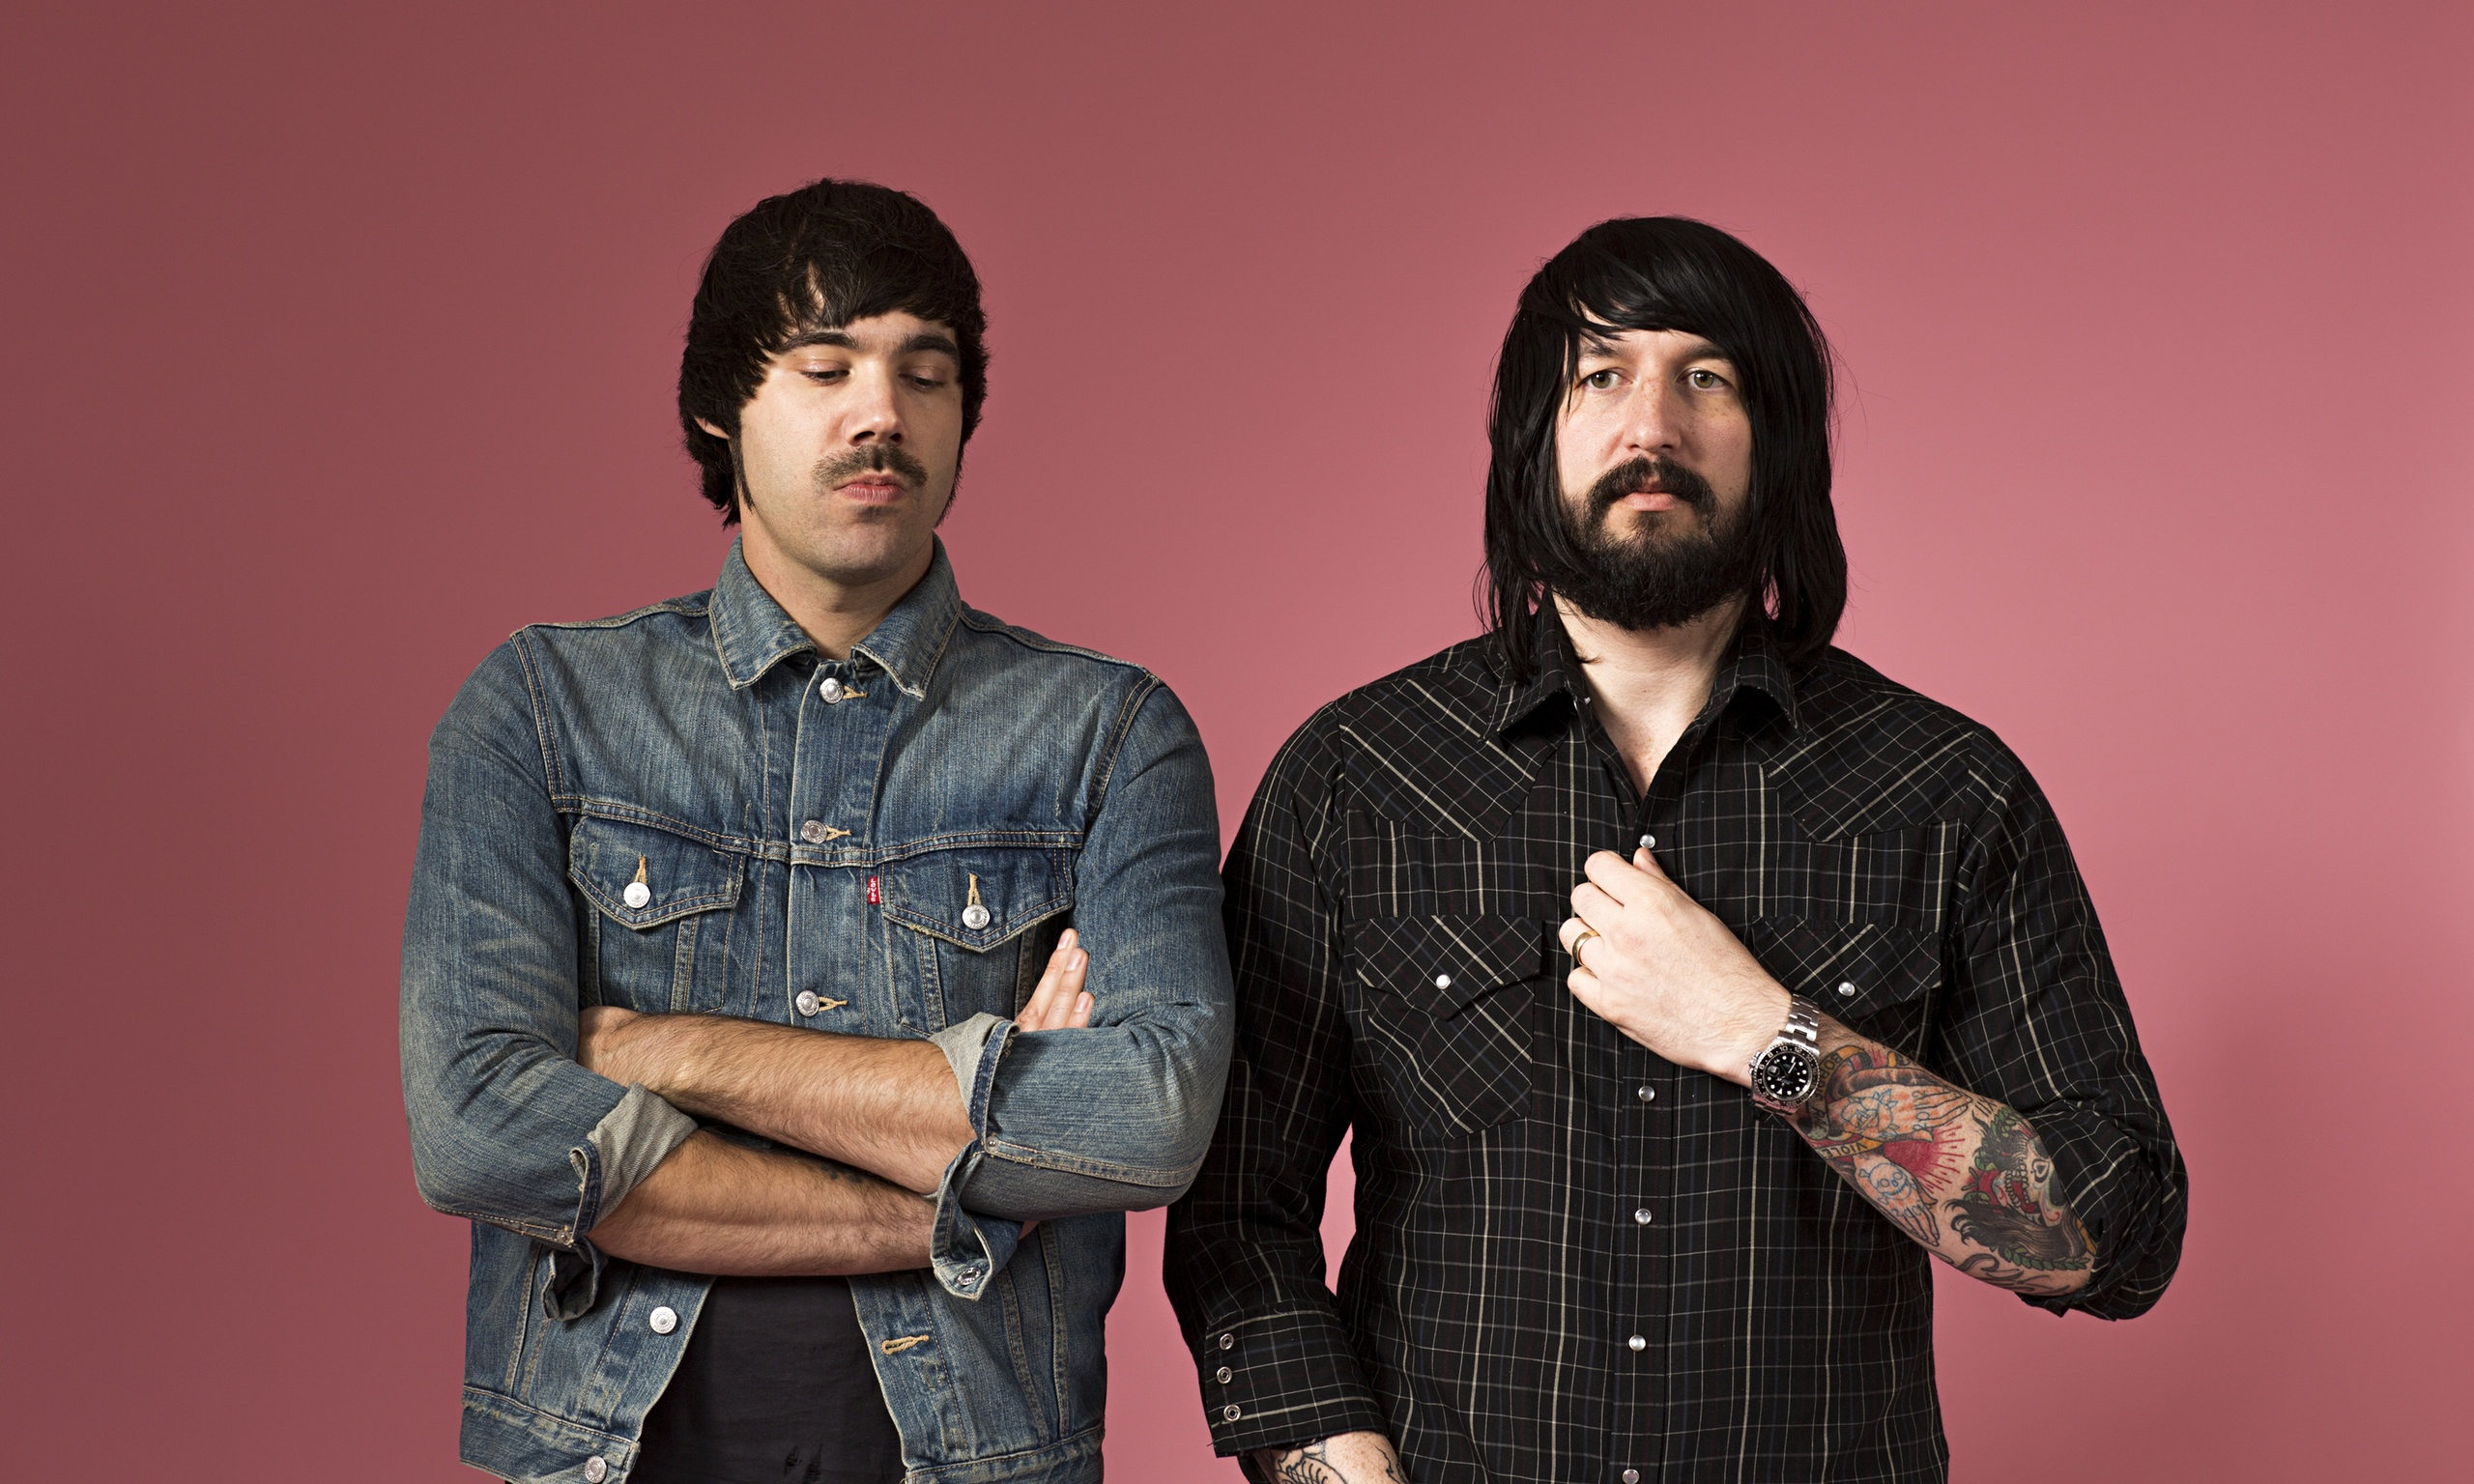 Toronto's Death From Above 1979 will no longer play Kerfuffle on Jul 23.